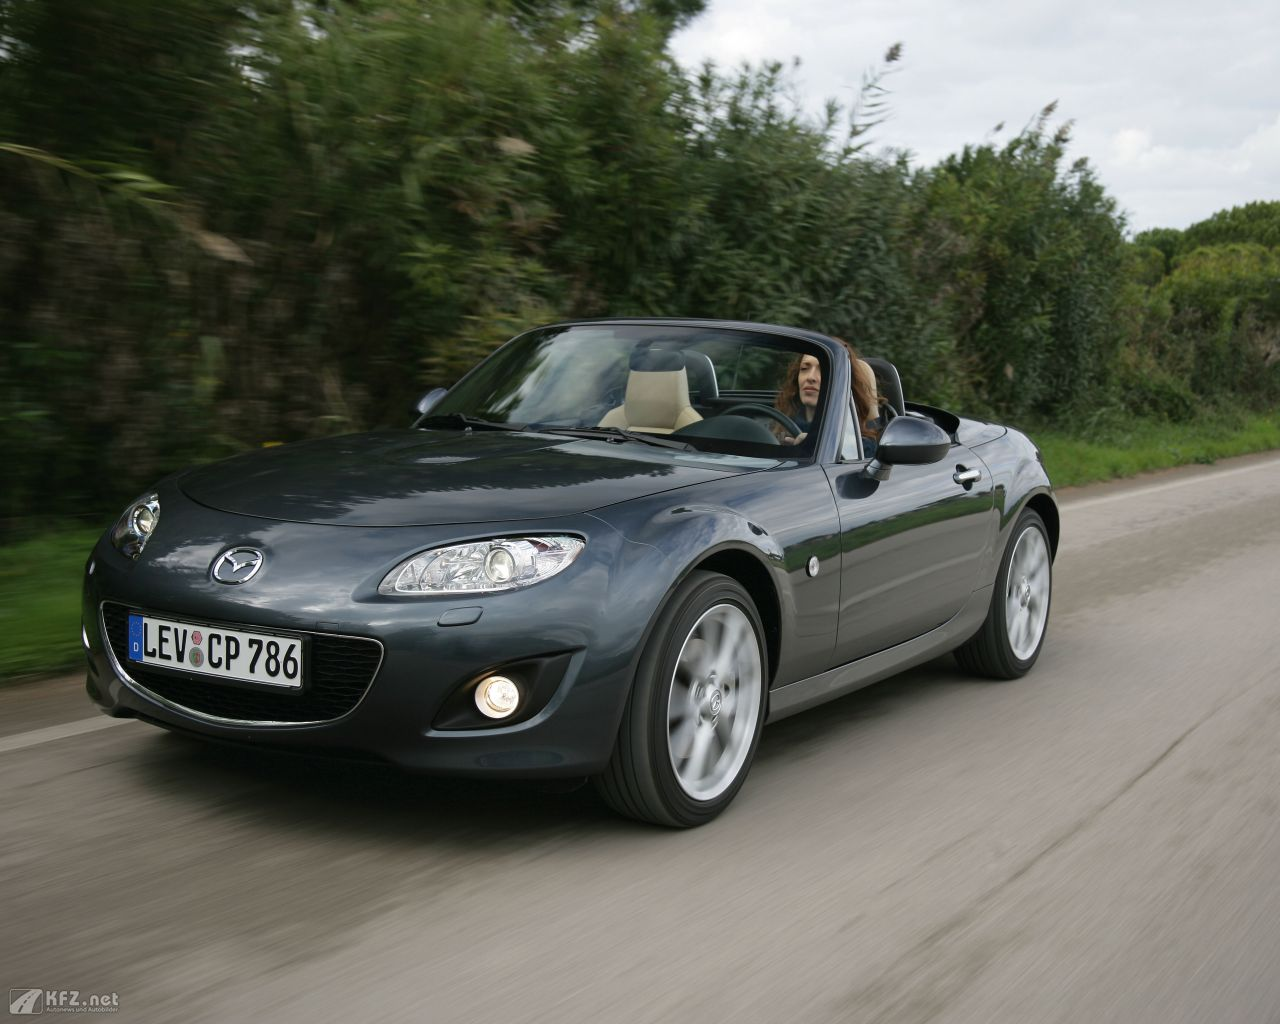 mazda mx5 bilder der roadster gilt guter sportwagen. Black Bedroom Furniture Sets. Home Design Ideas